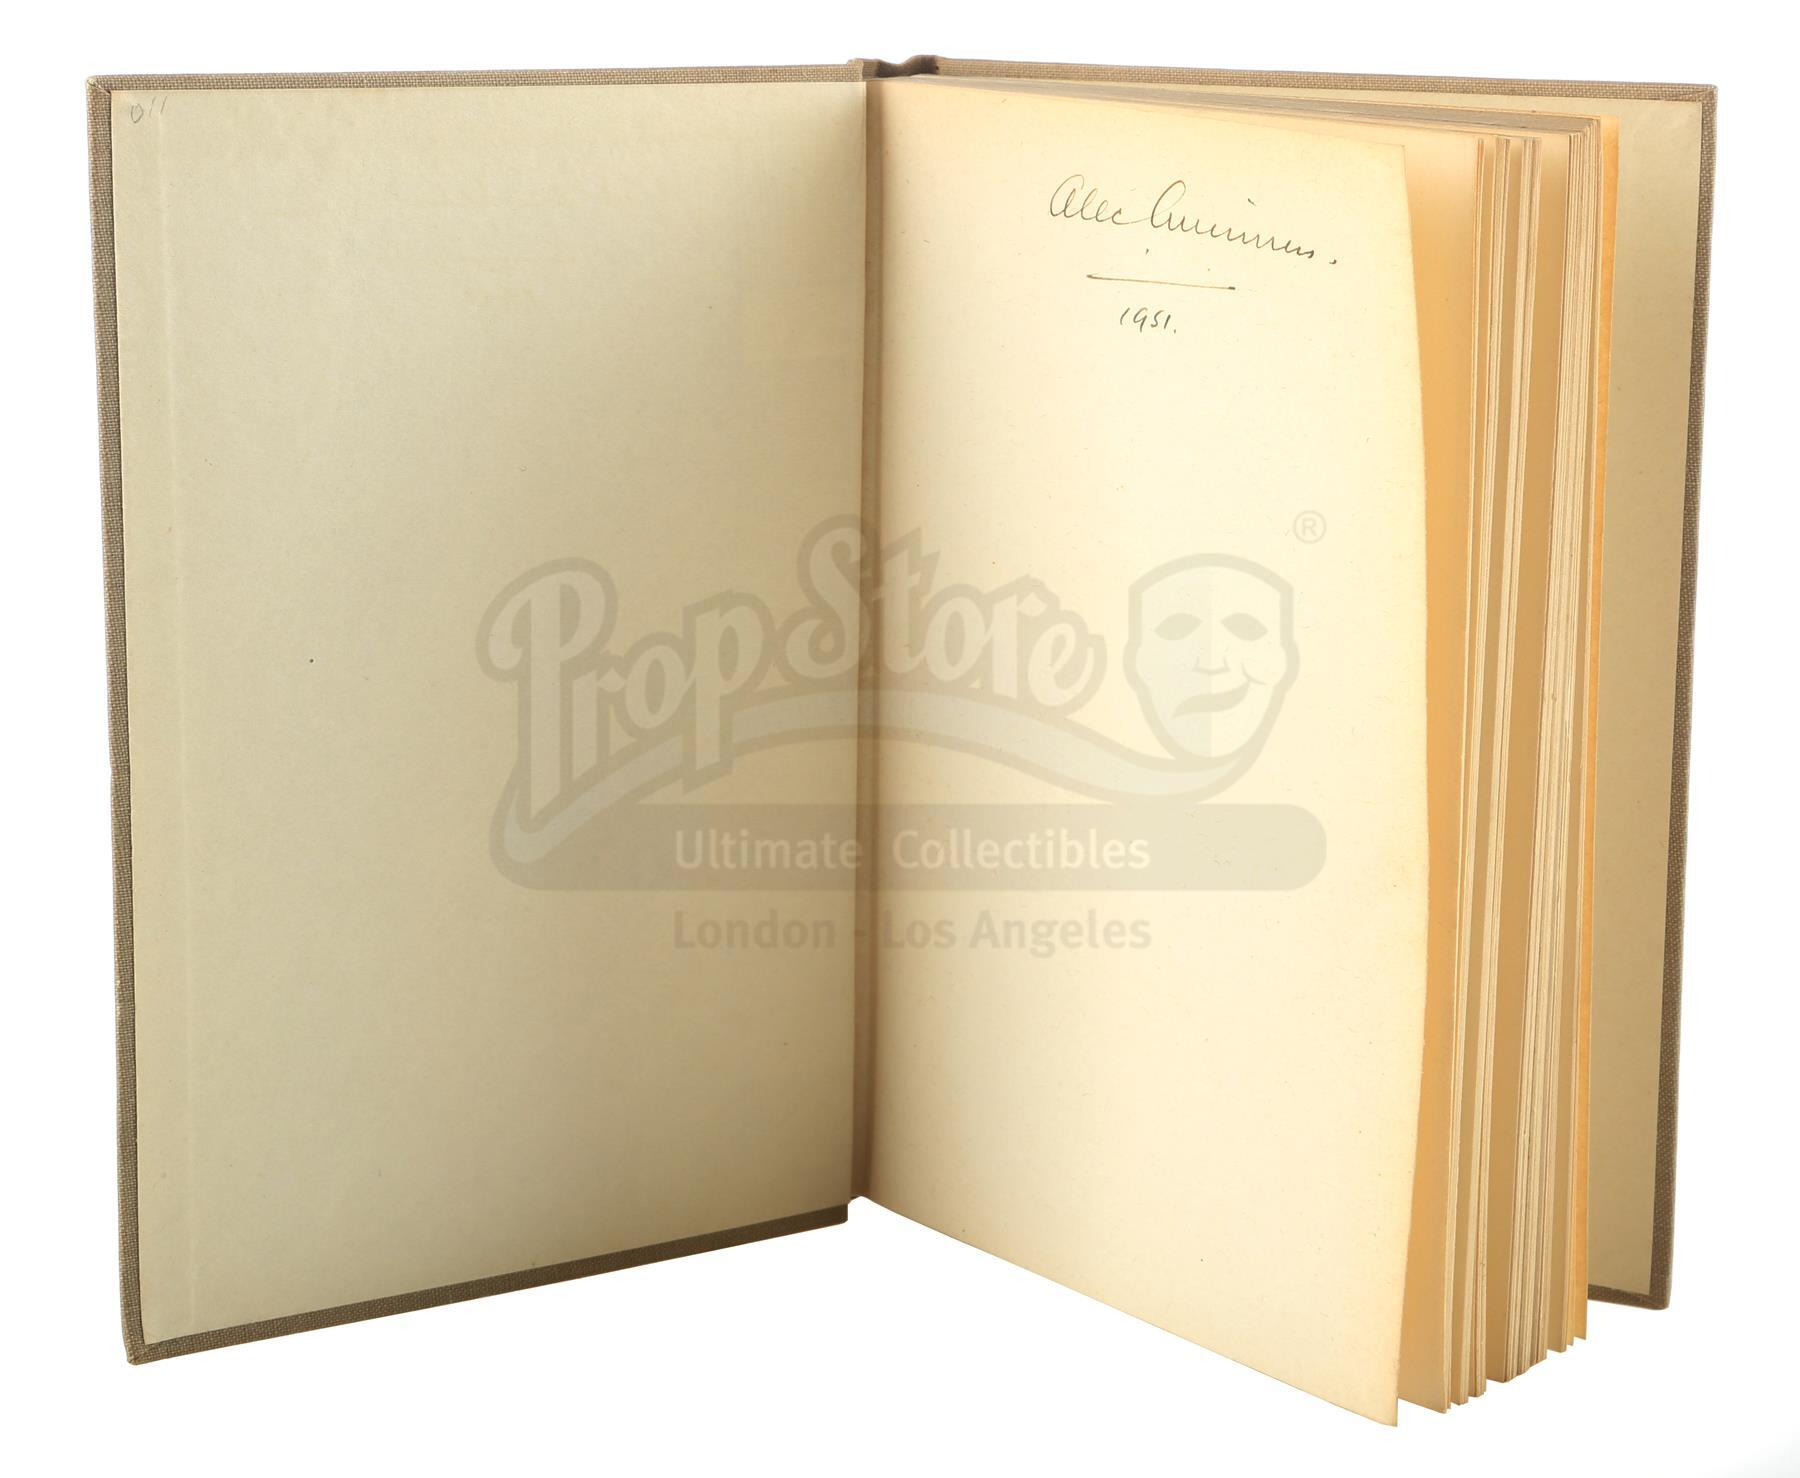 Lot # 1160: STAR WARS - EP IV - A NEW HOPE (1977) - Alec Guinness-Owned and Signed Book